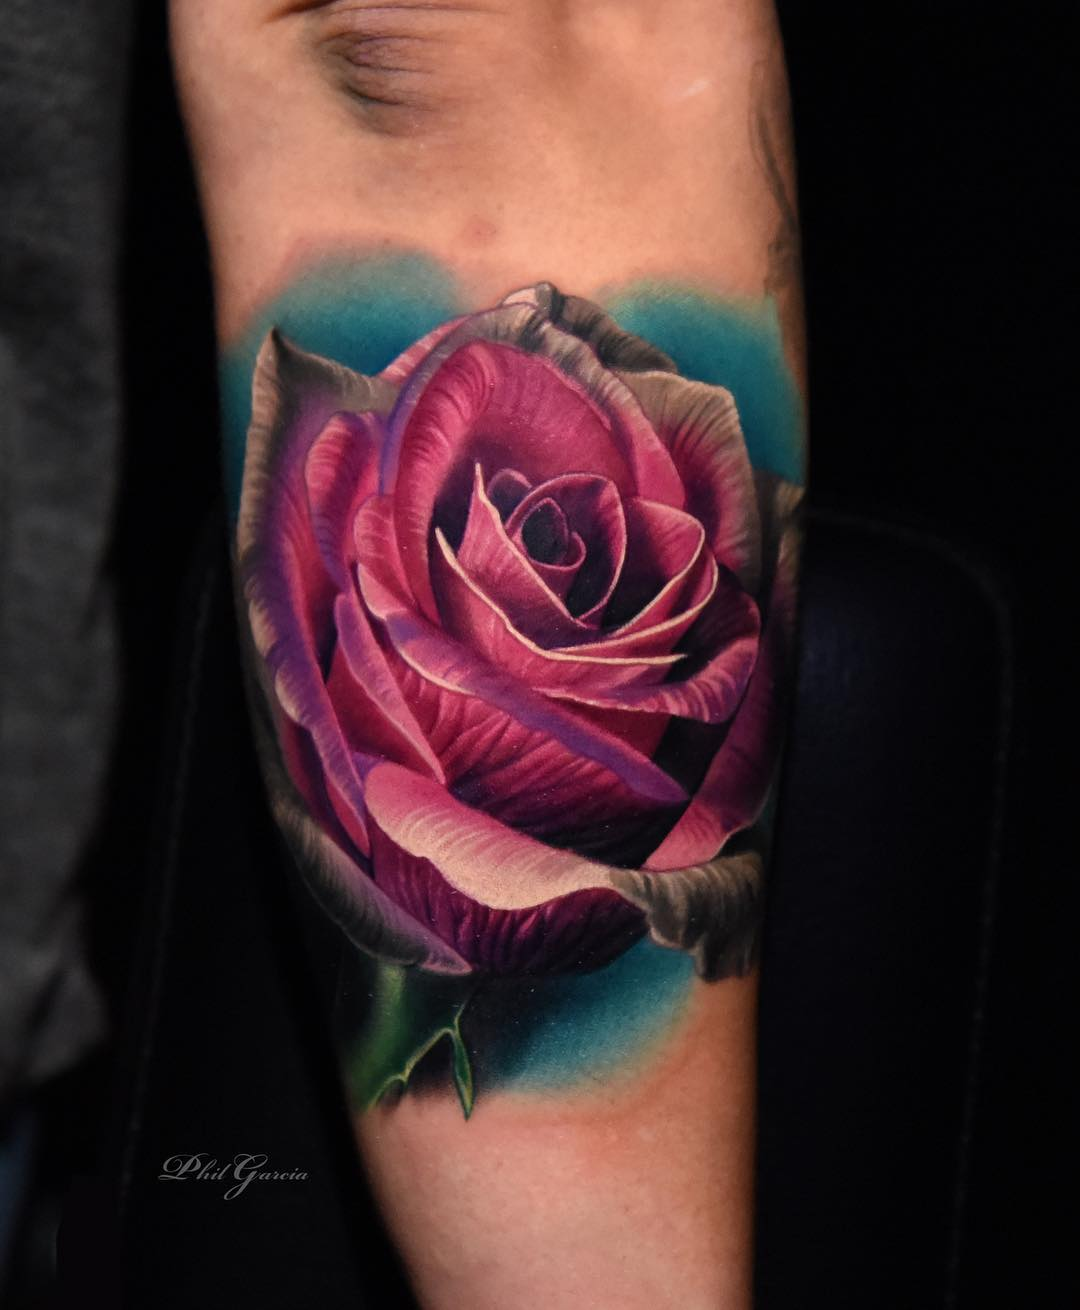 1211b4970 Check out Tattoo Artist Phil Garcia's Instagram Page for more amazing  tattoos! rose tattoo